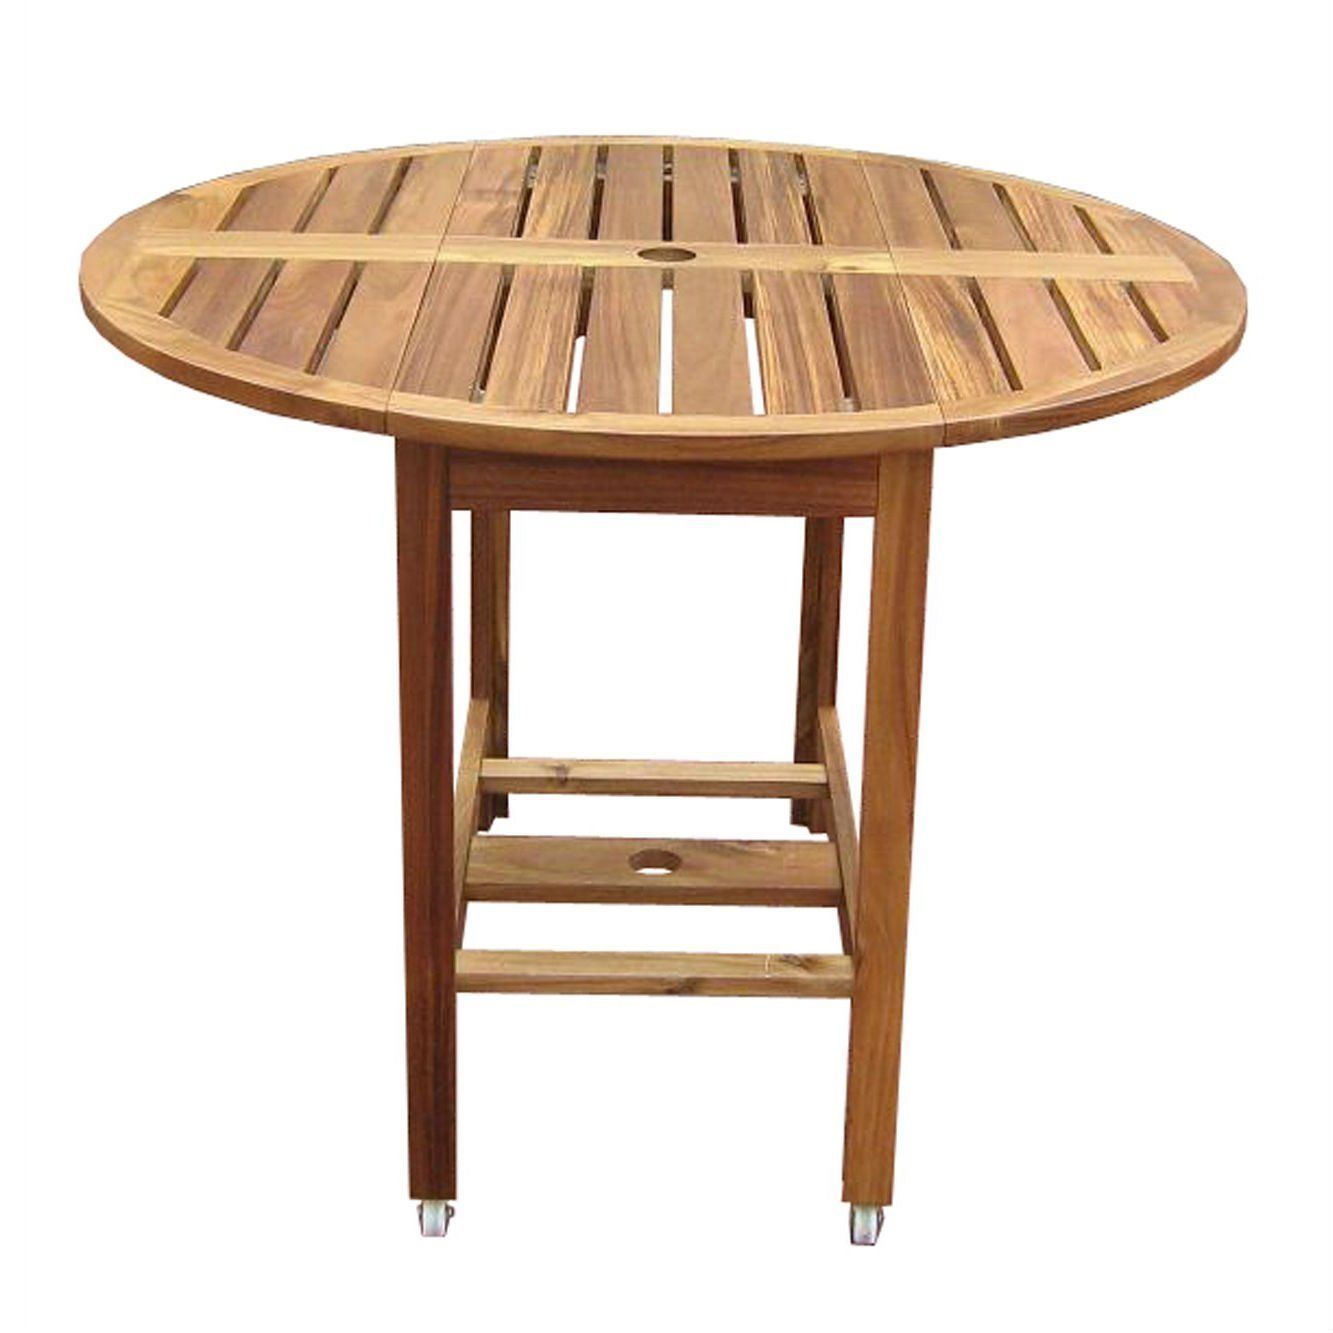 Kiln dried hardwood inch folding patio dining table with wheels